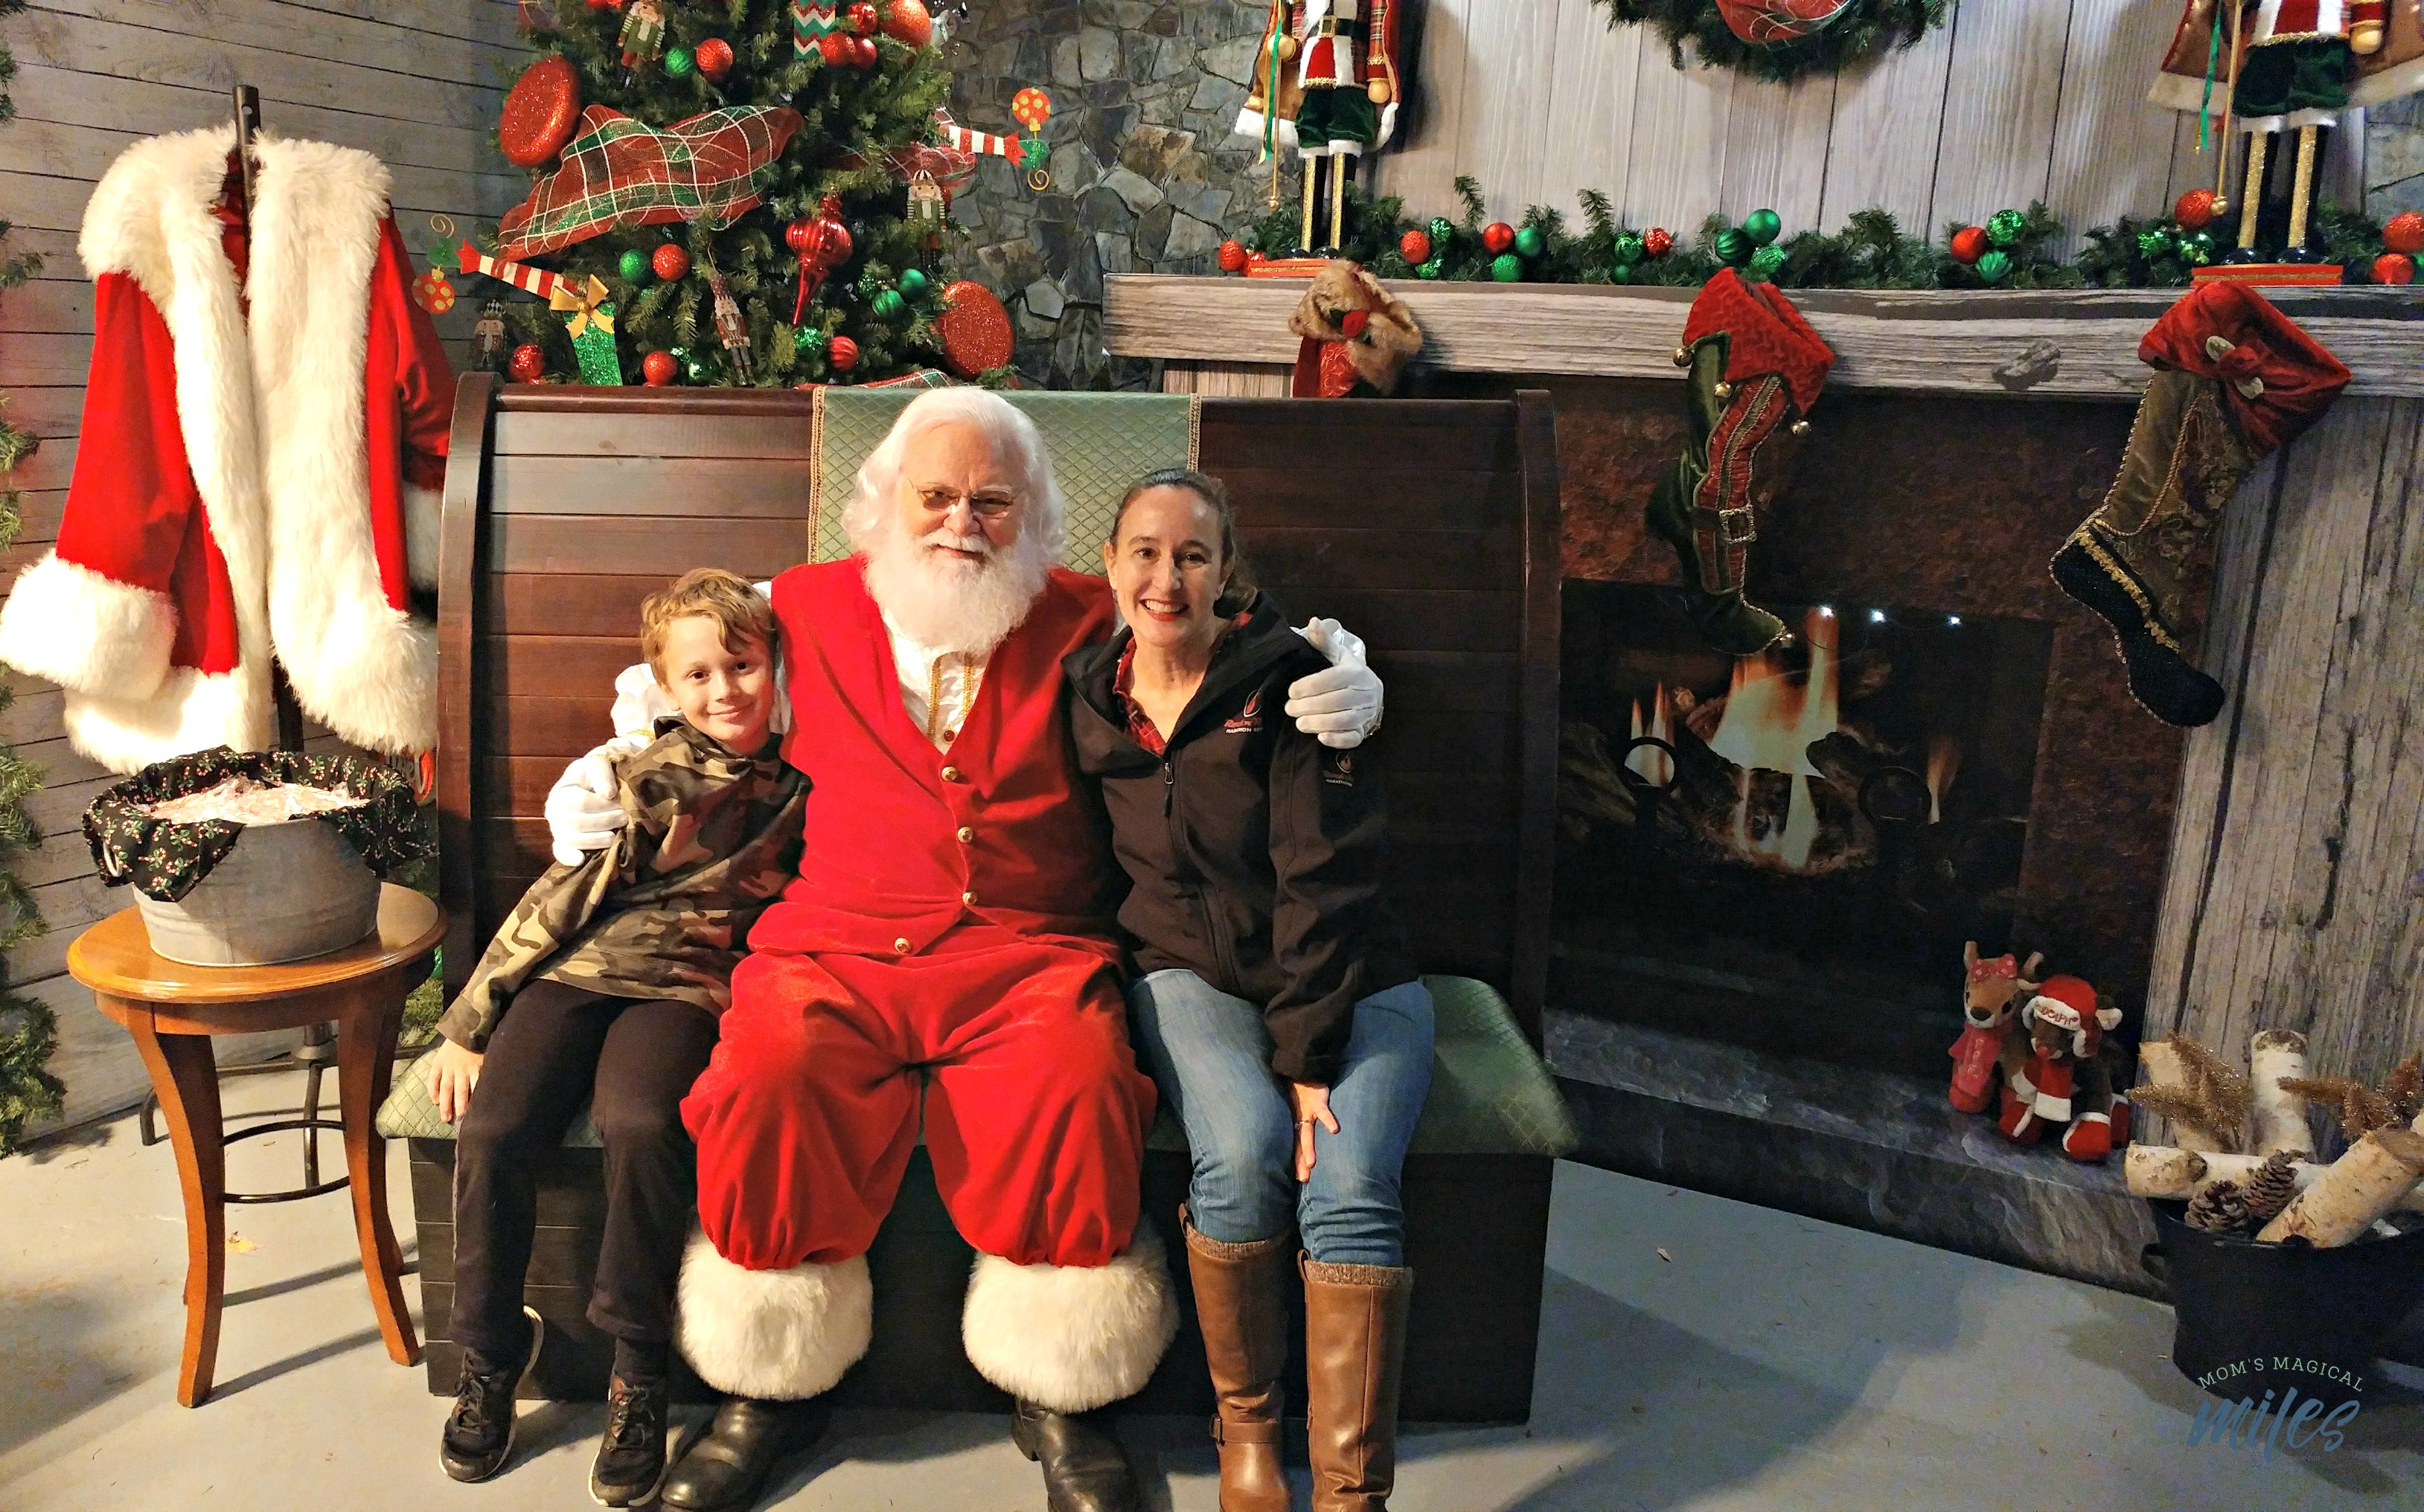 Stone Mountain Christmas is one of the BEST places to see Santa AND Mrs. Claus!